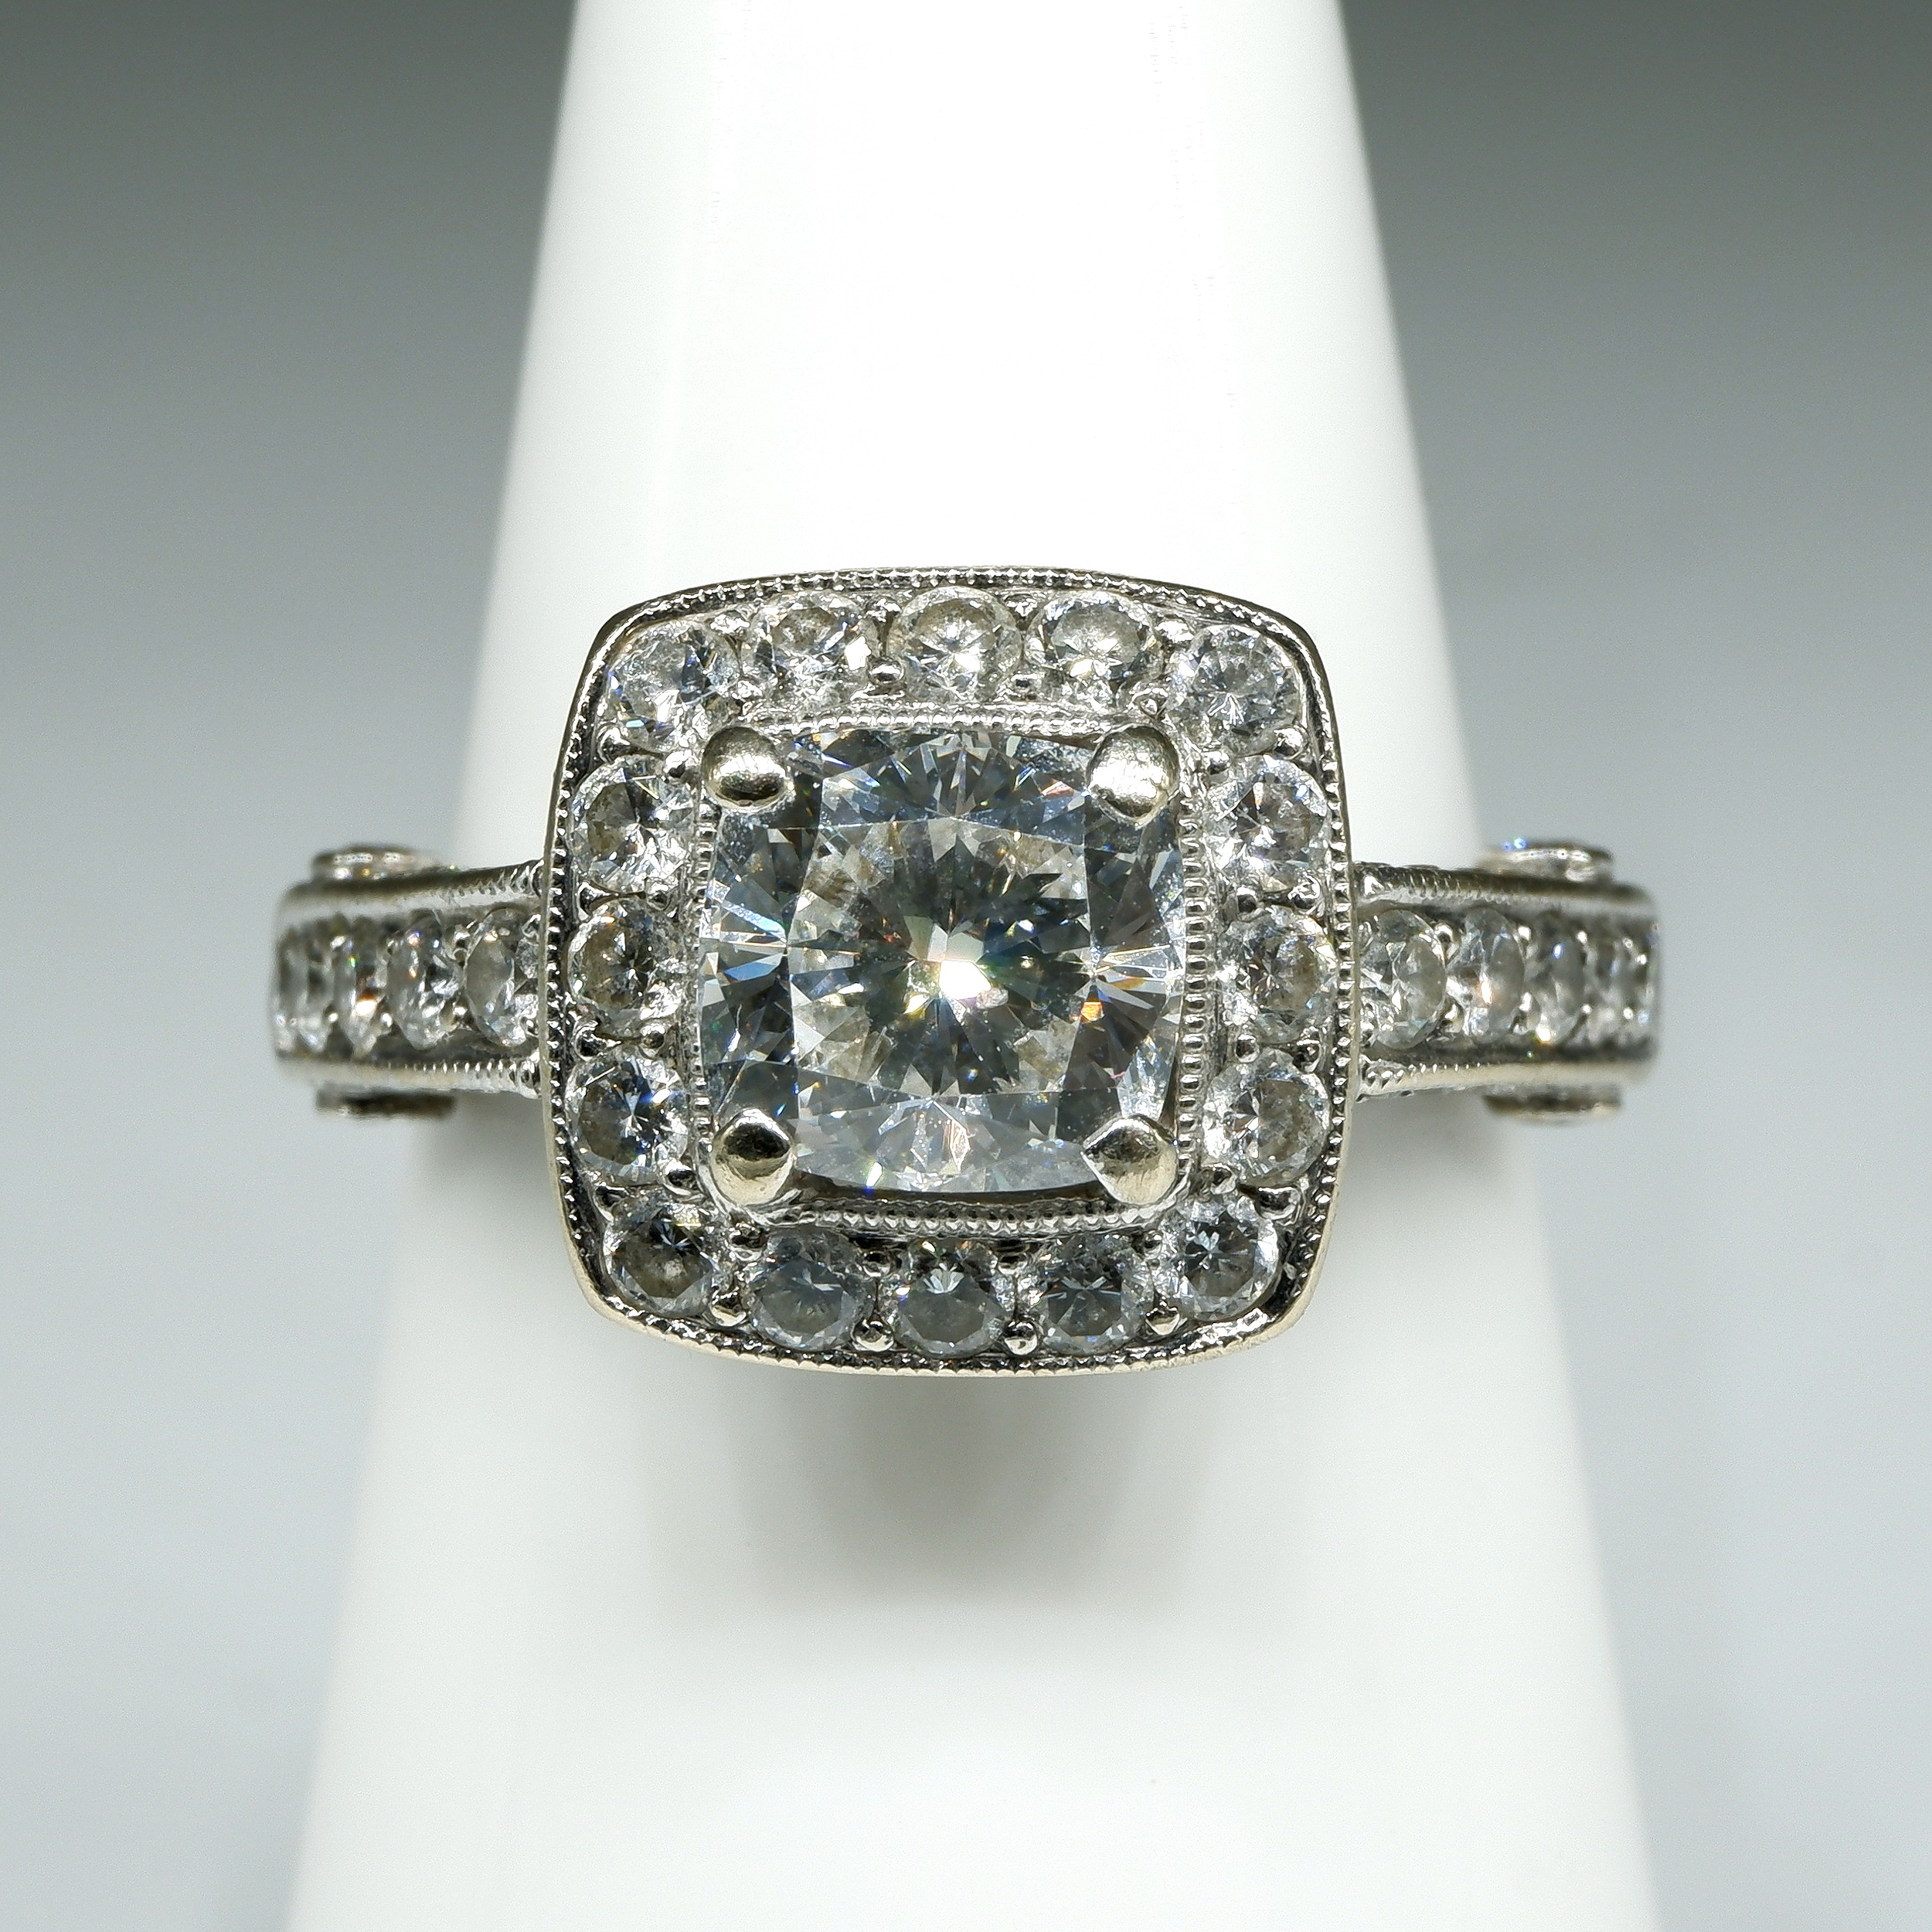 '18ct White Gold Diamond Ring, with at Centre Cushion Cut Diamond 1.10ct (F/G SI2), 5.8g'